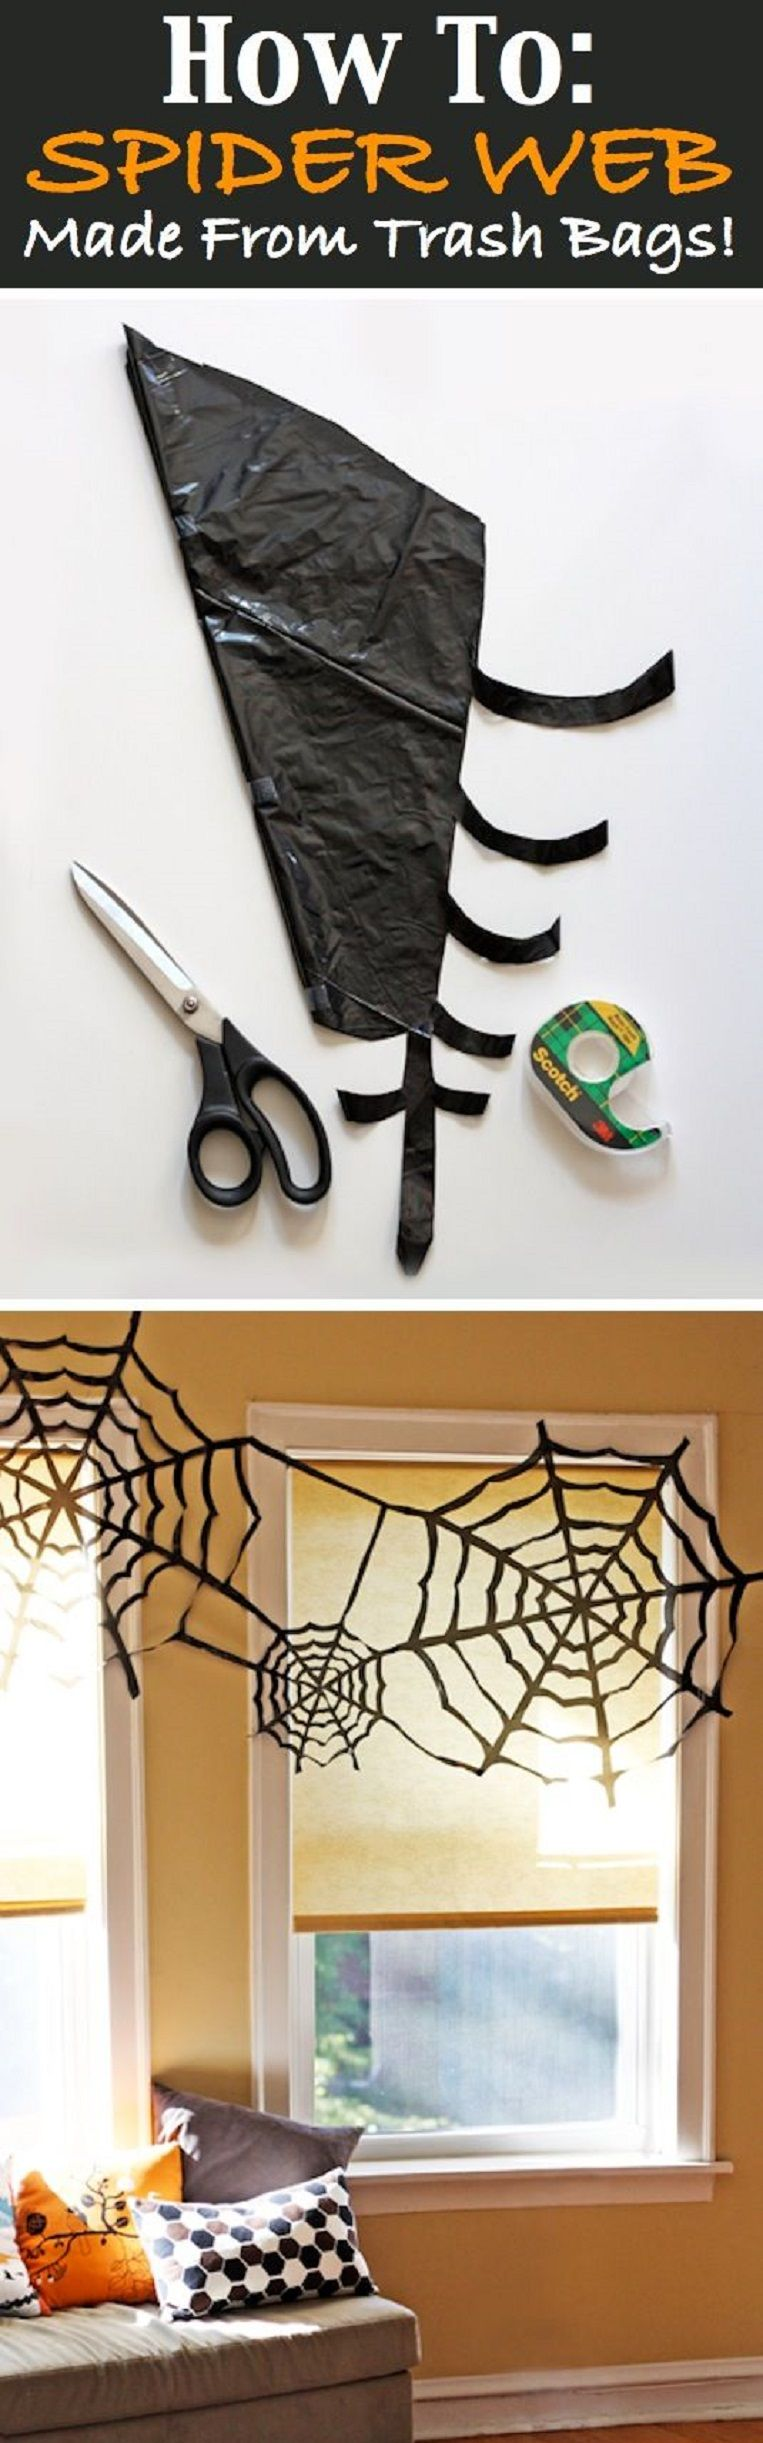 21 quick and fun last minute halloween crafts and hacks - Last Minute Halloween Decorations